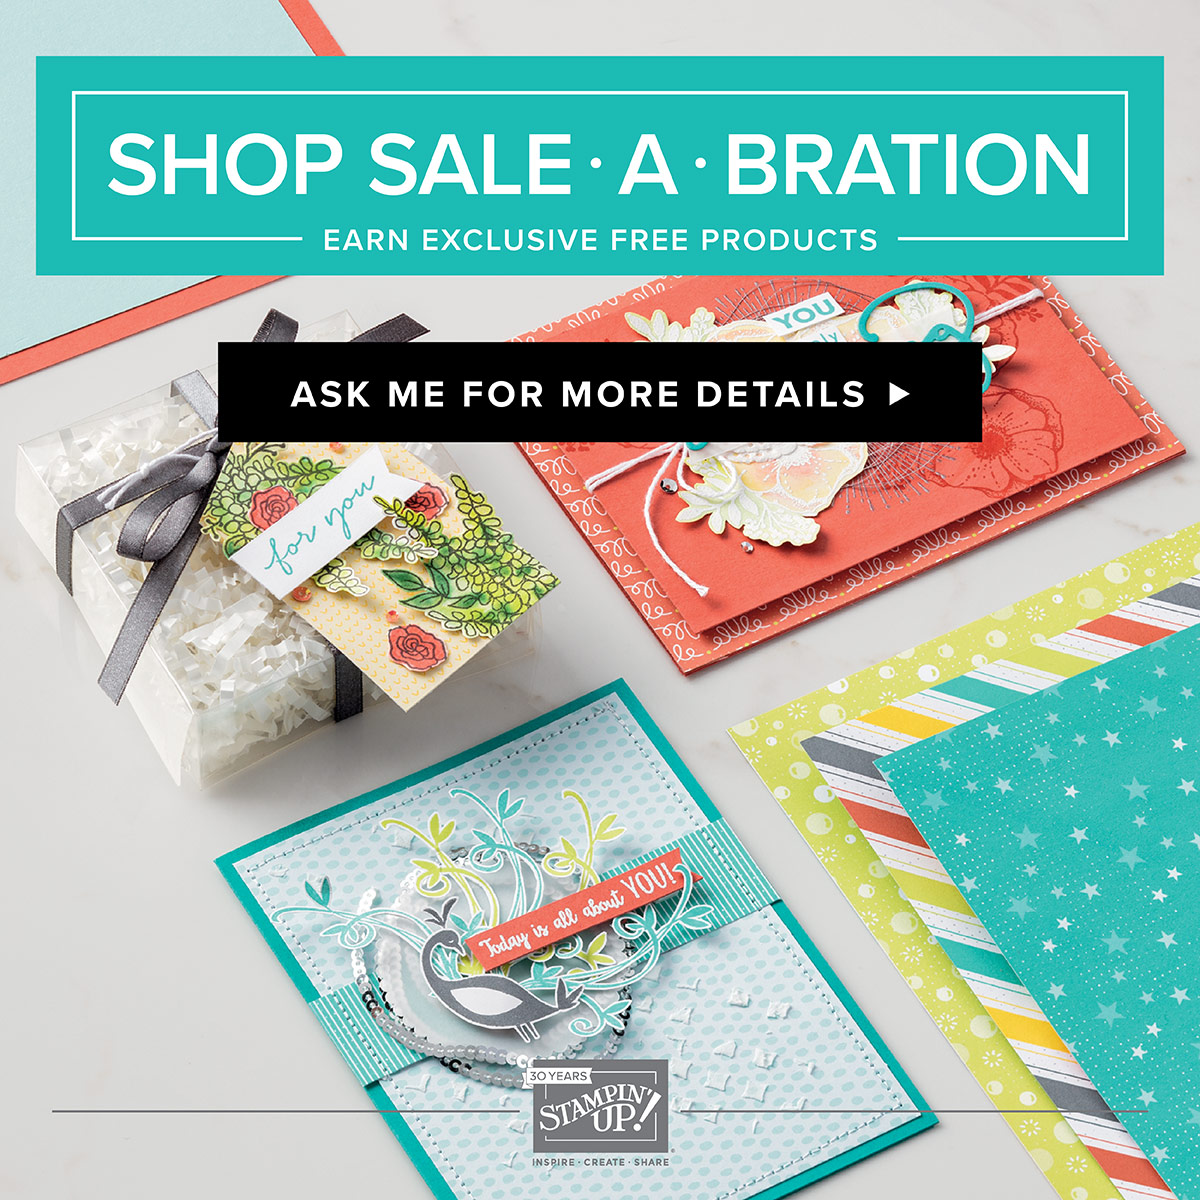 Earn Free Products during Sale-A-Bration!